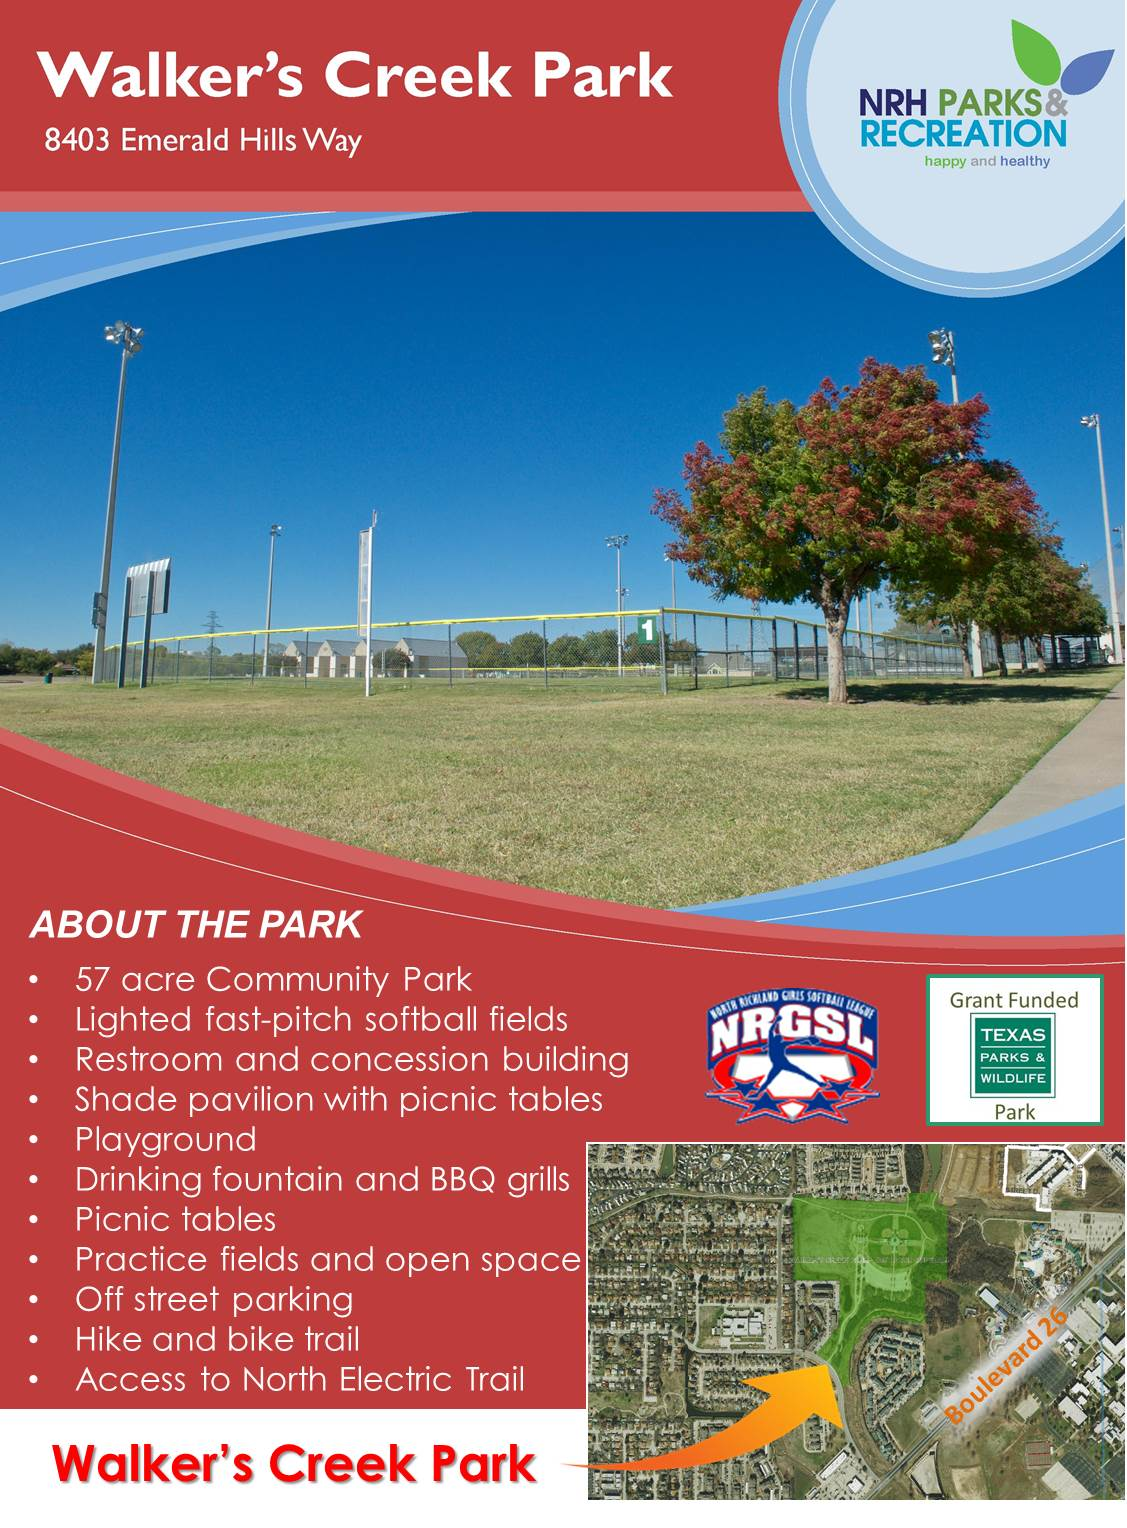 Walkers Creek Park Fact Sheet.jpg